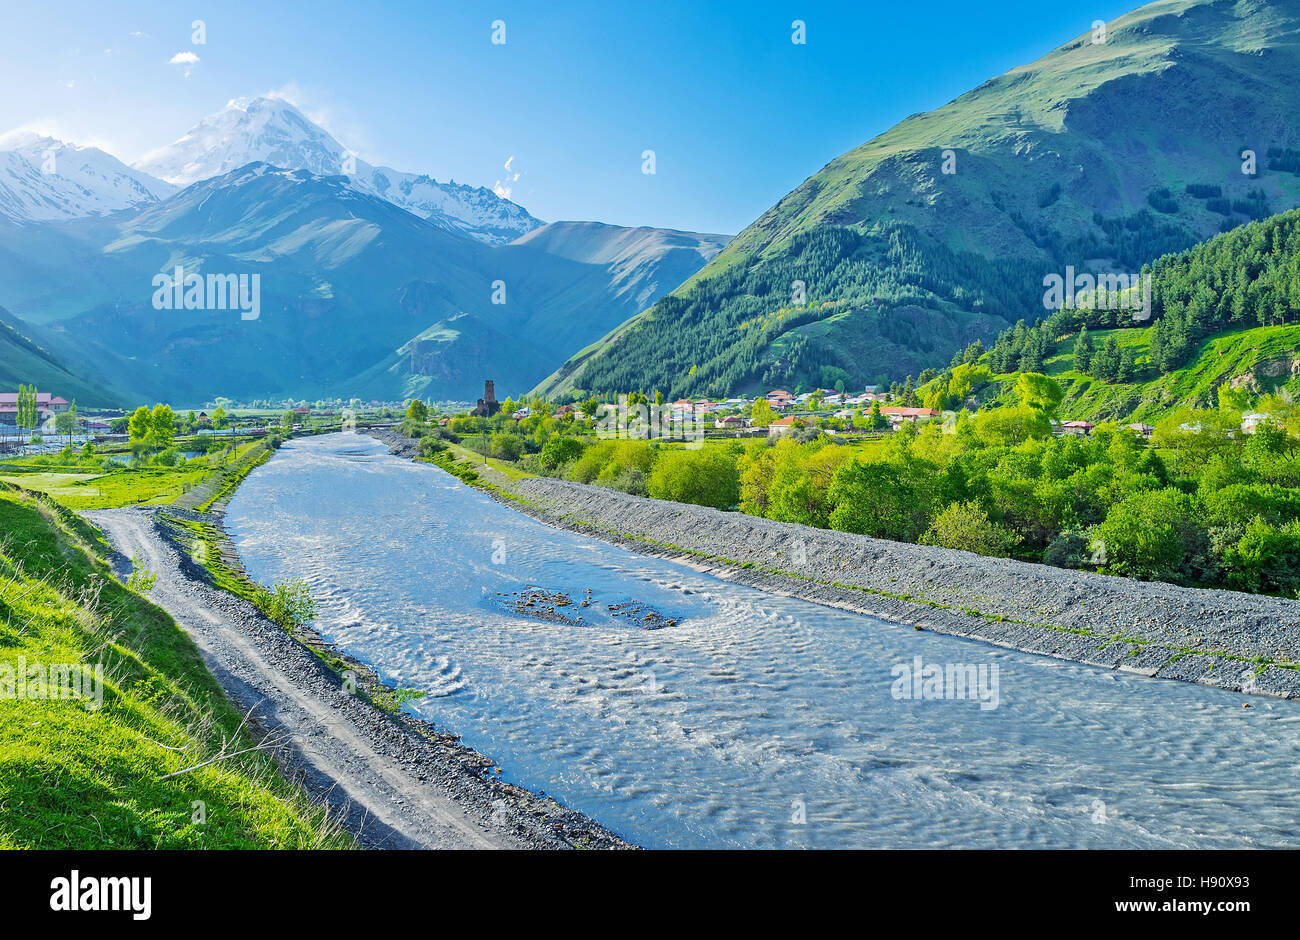 The sunny weather in Sno valley offers the view on the Kazbek Mount, rising above the villages, Kazbegi, Georgia. - Stock Image